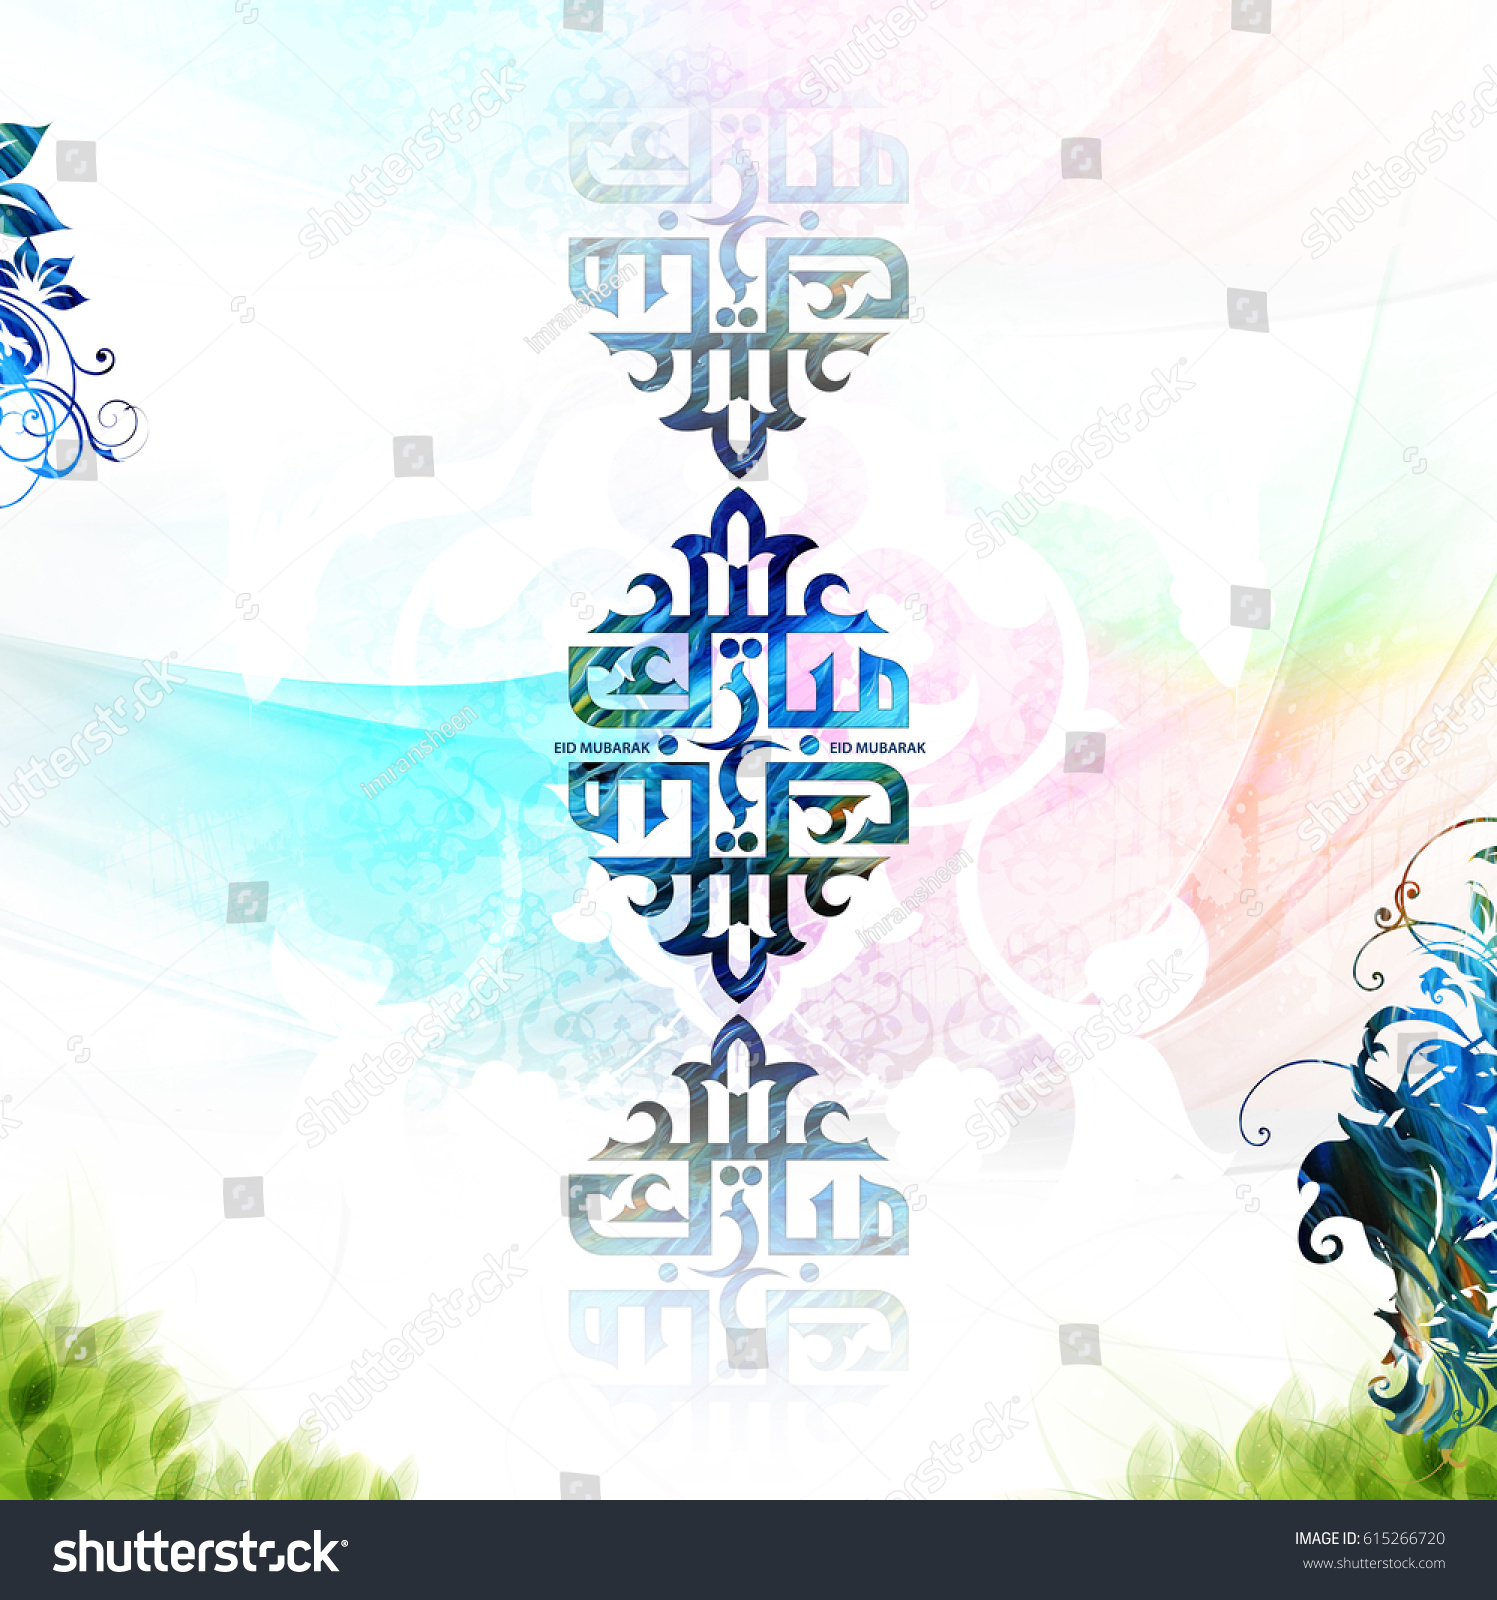 Eid mubarak greeting card written arabic stock illustration eid mubarak greeting card written arabic and english for electronic greeting and for print greeting on m4hsunfo